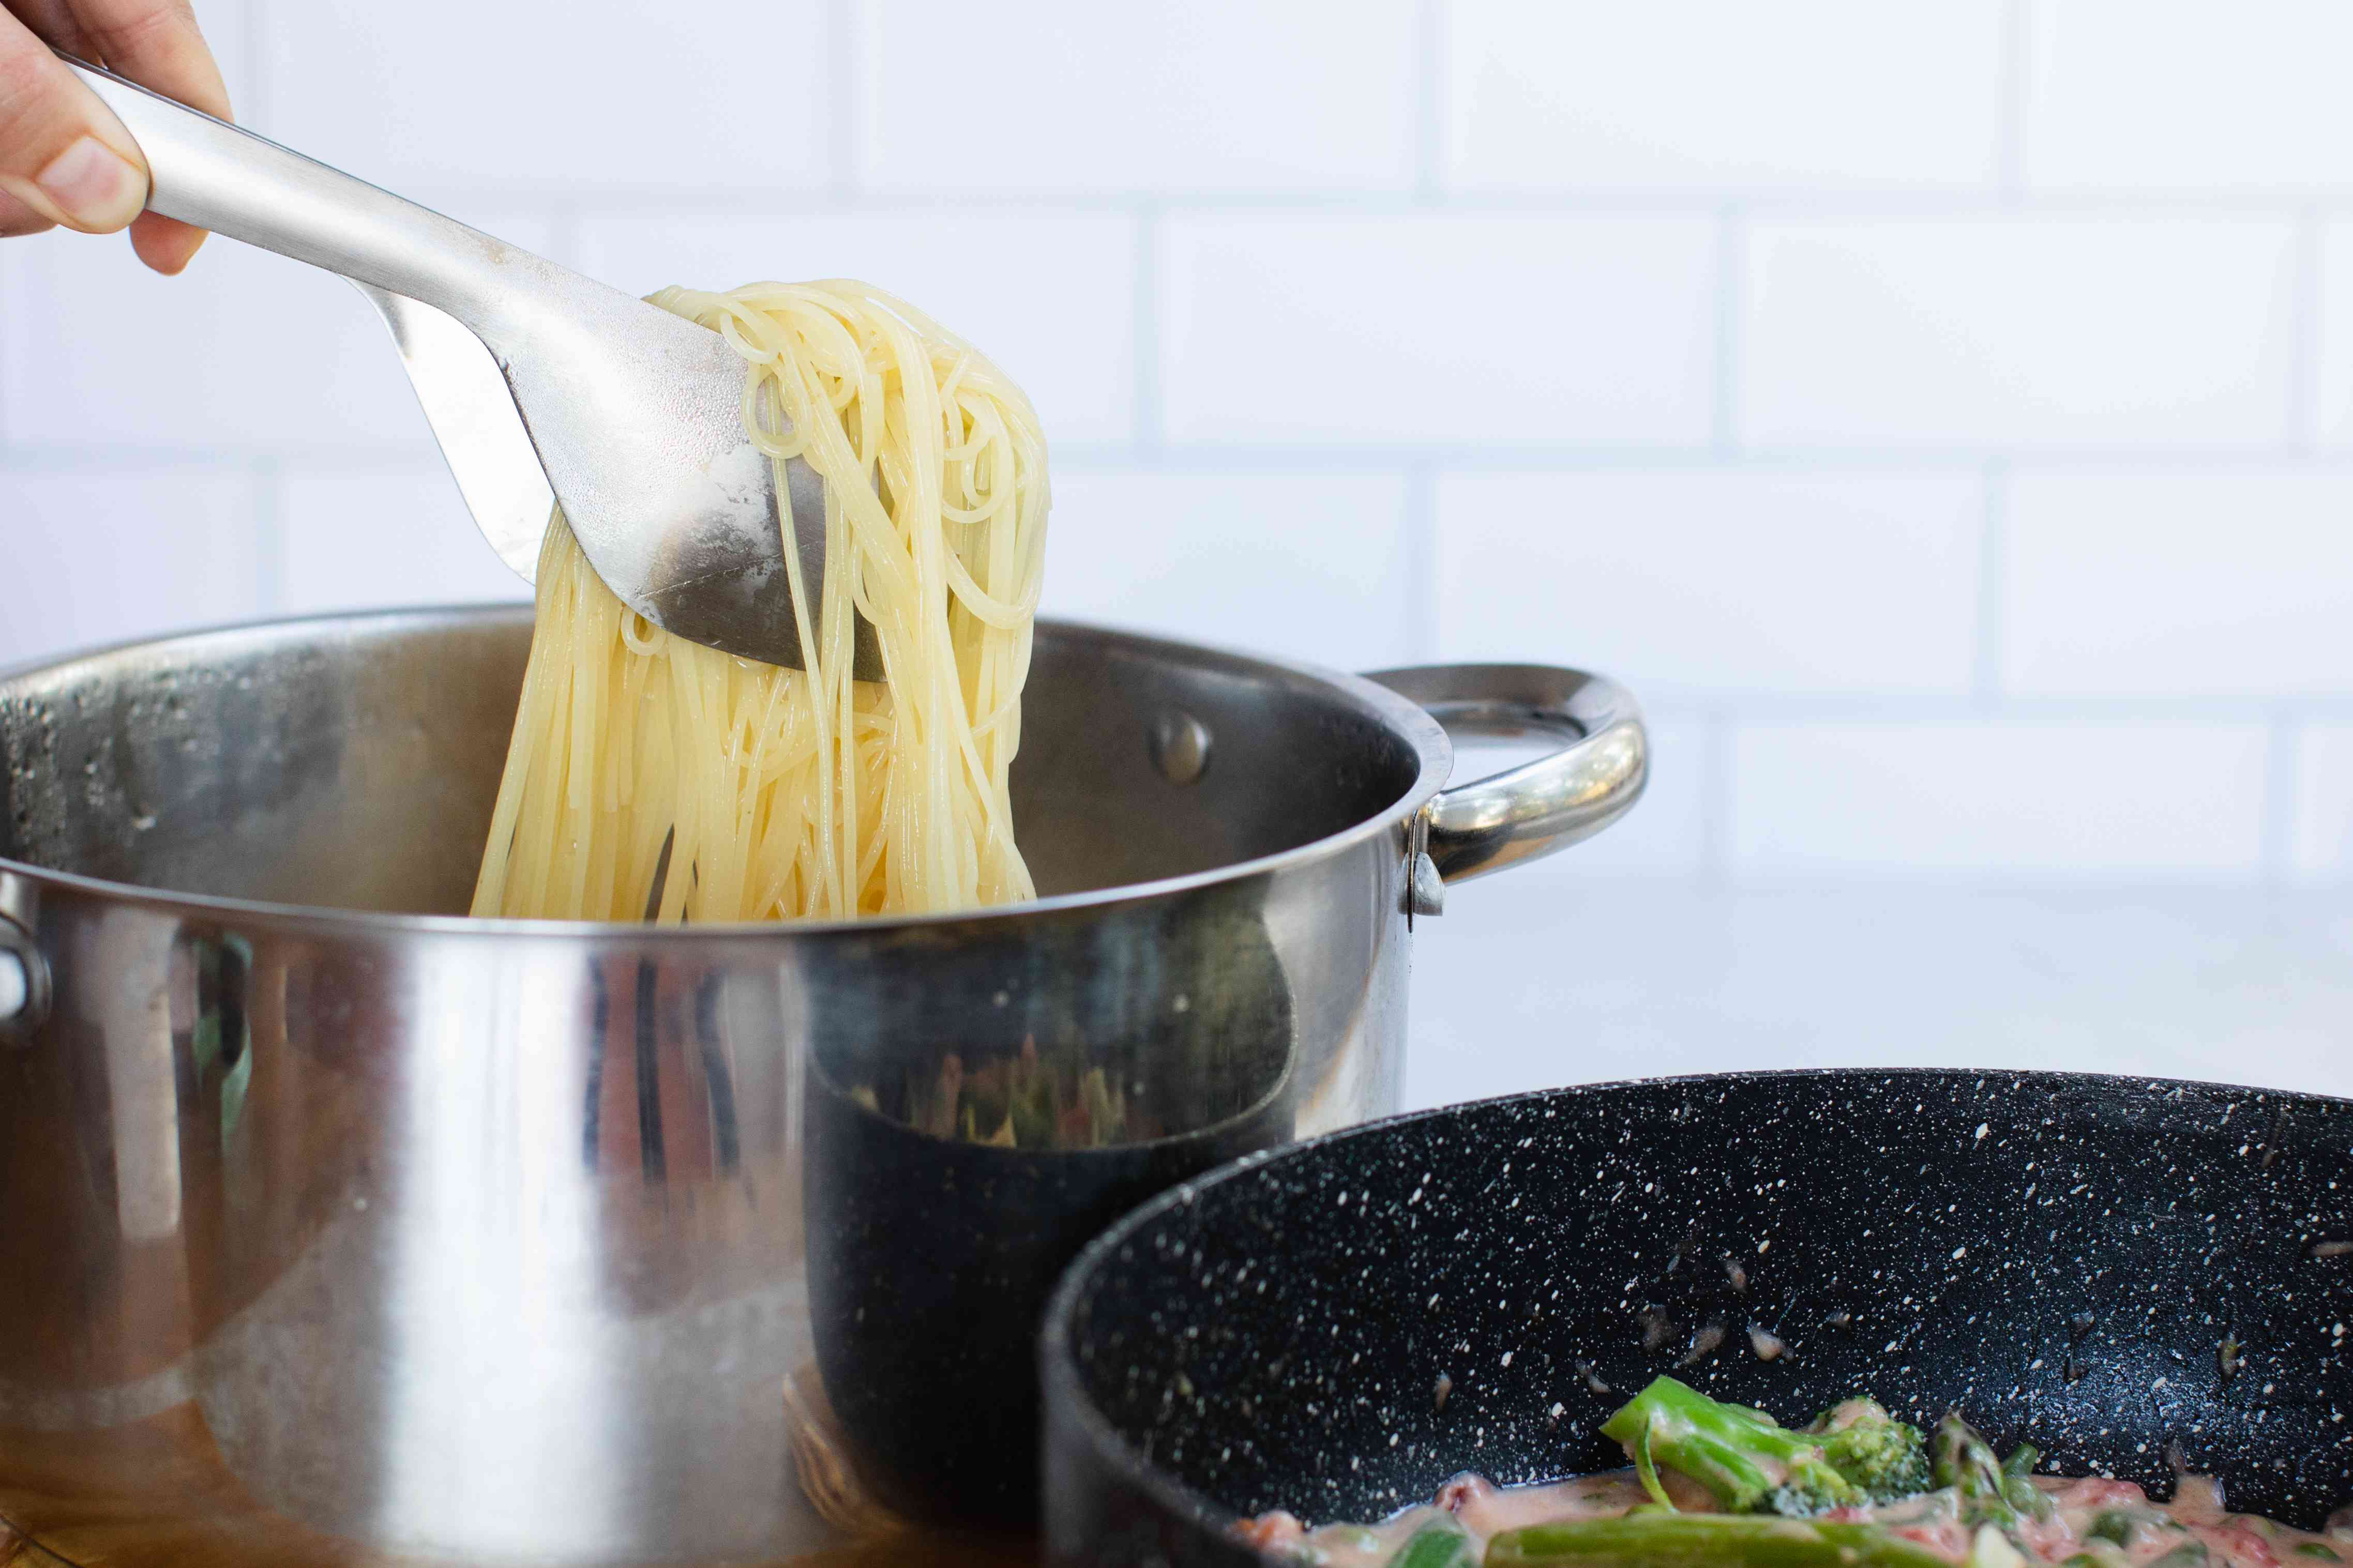 Tongs with cooked spaghetti noodles in a pot with a the pasta primavera vegetables next to it in a skillet.